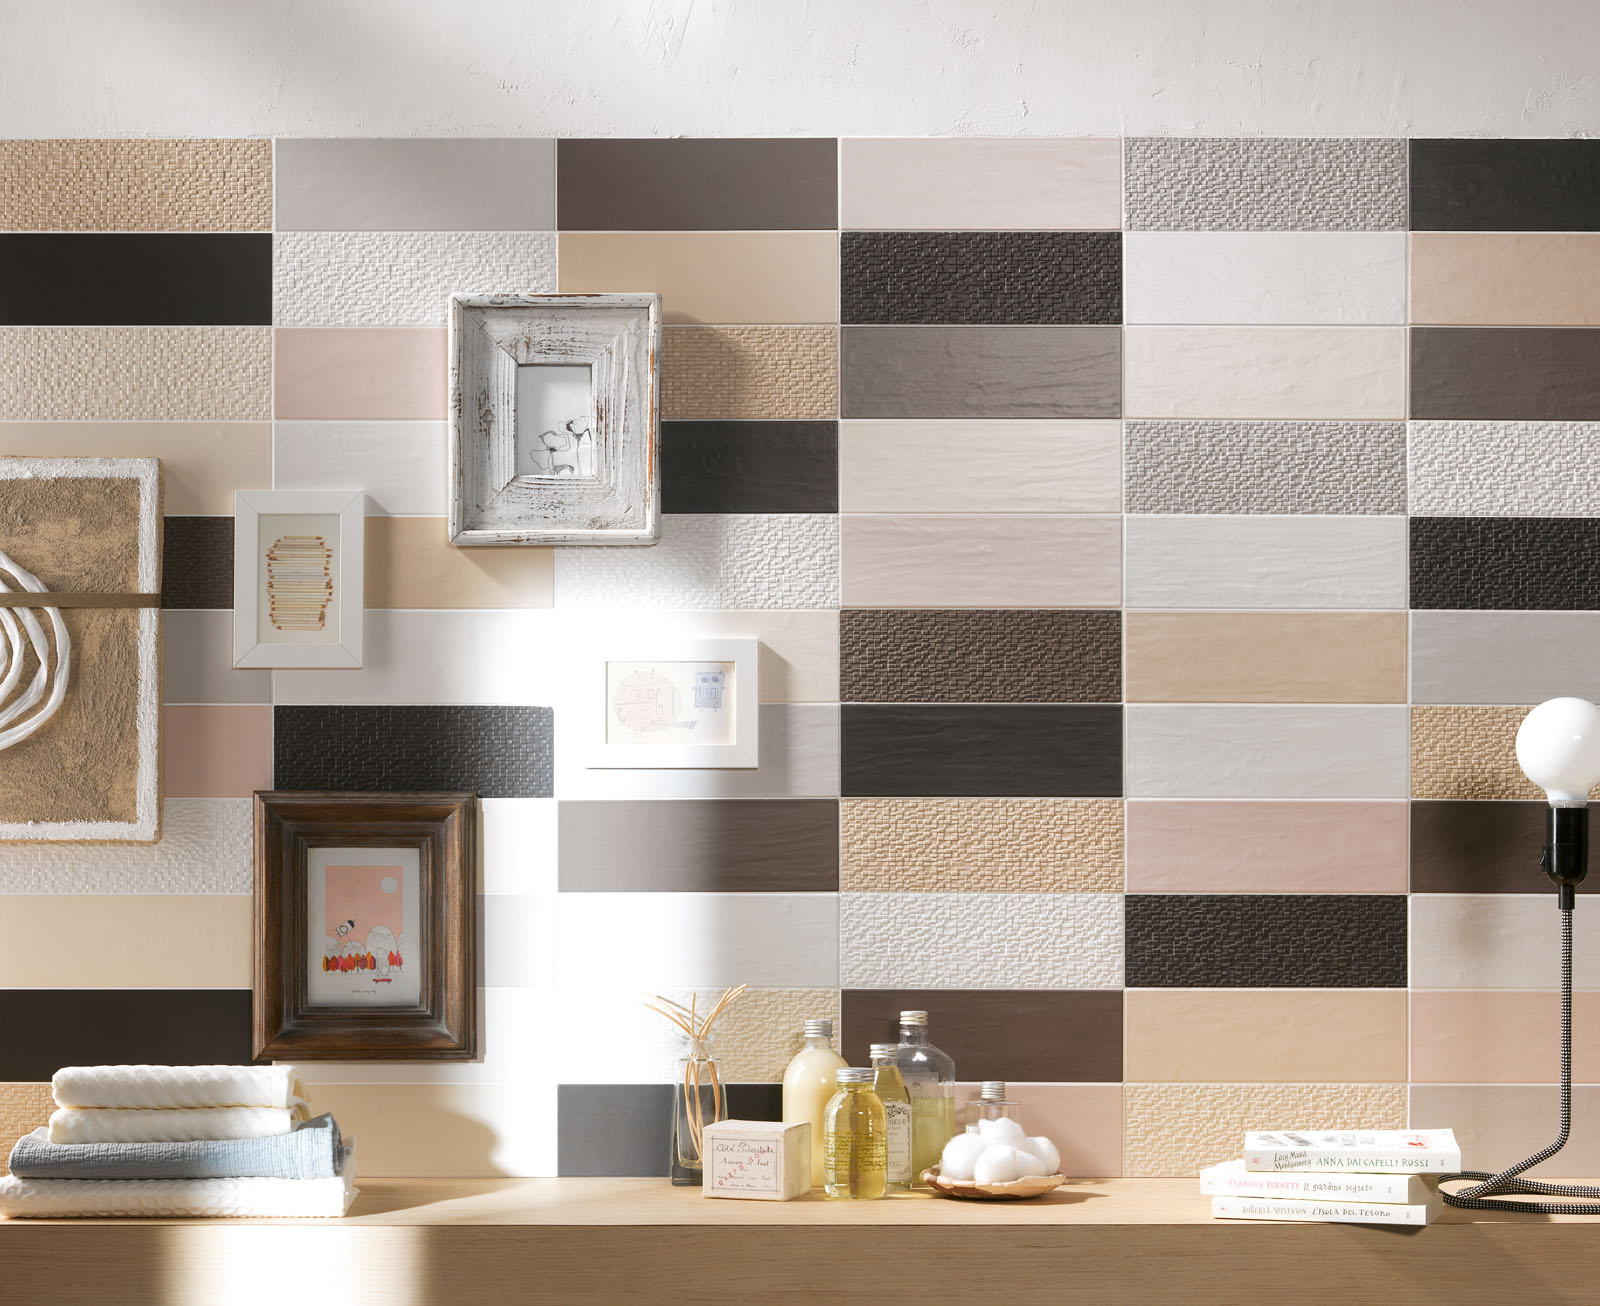 Inspirational ideas for tile laying marazzi weekend dailygadgetfo Gallery